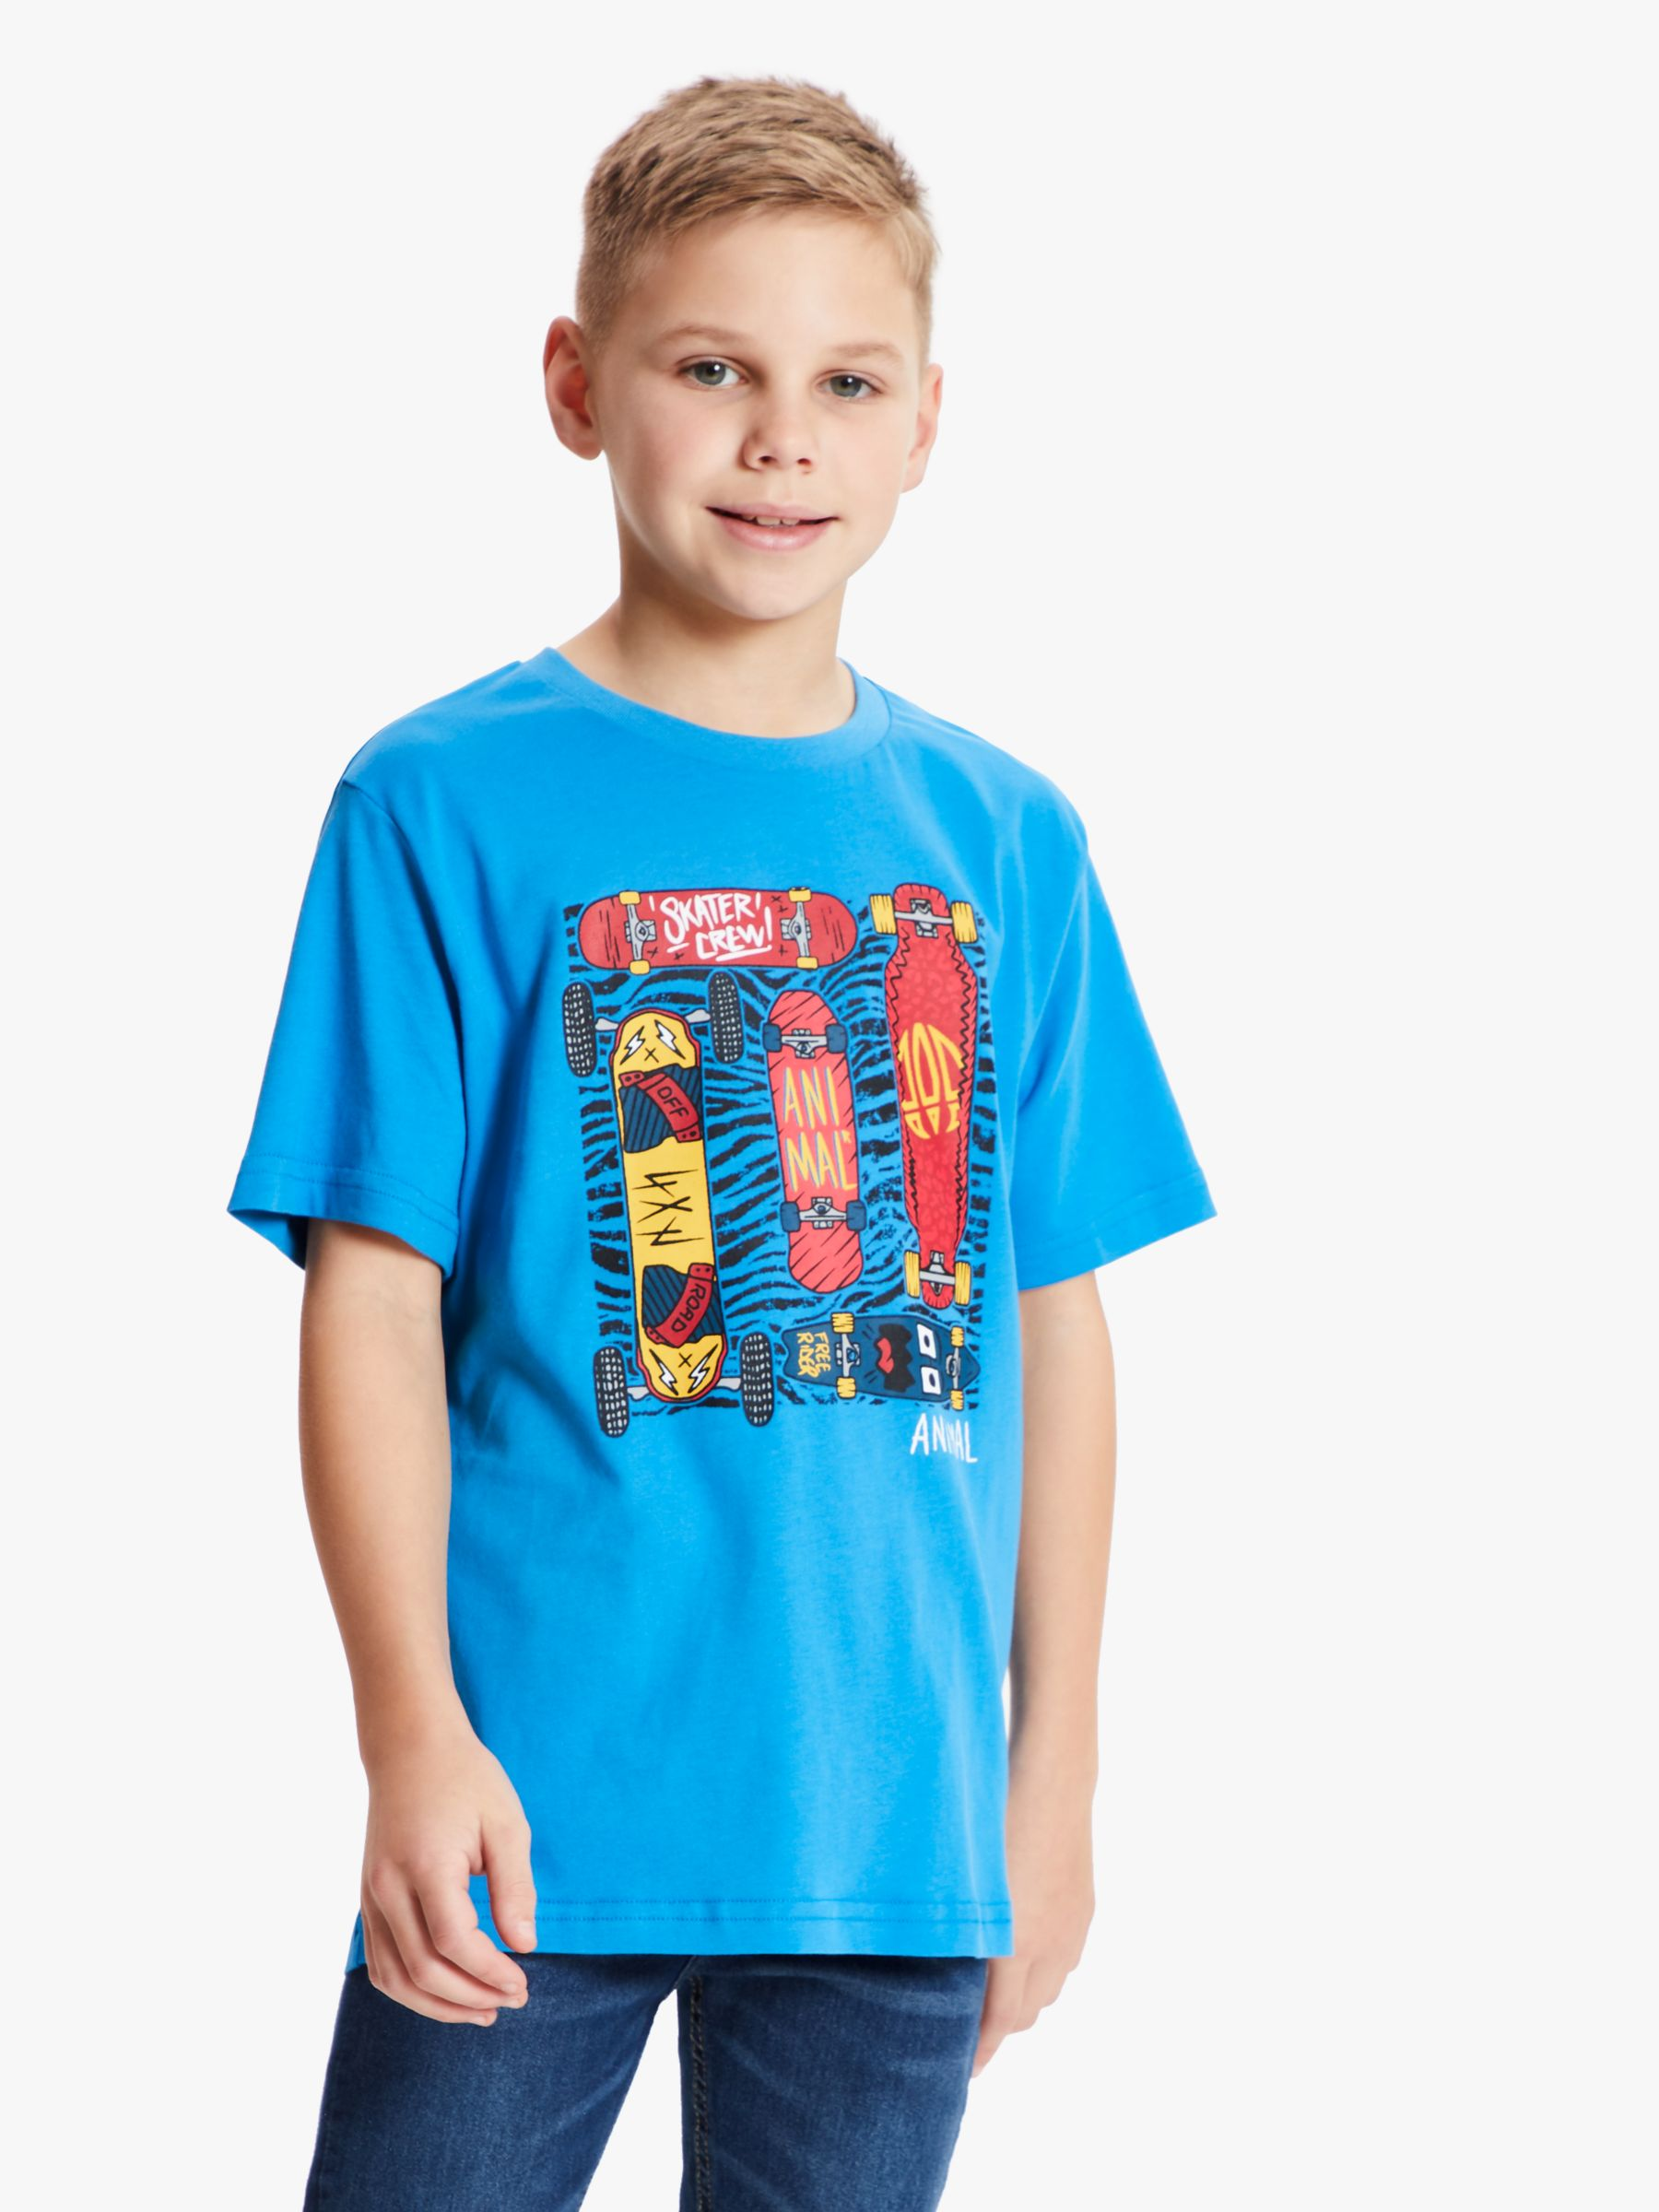 Animal Animal Boys' Board Print T-Shirt, Bright Blue